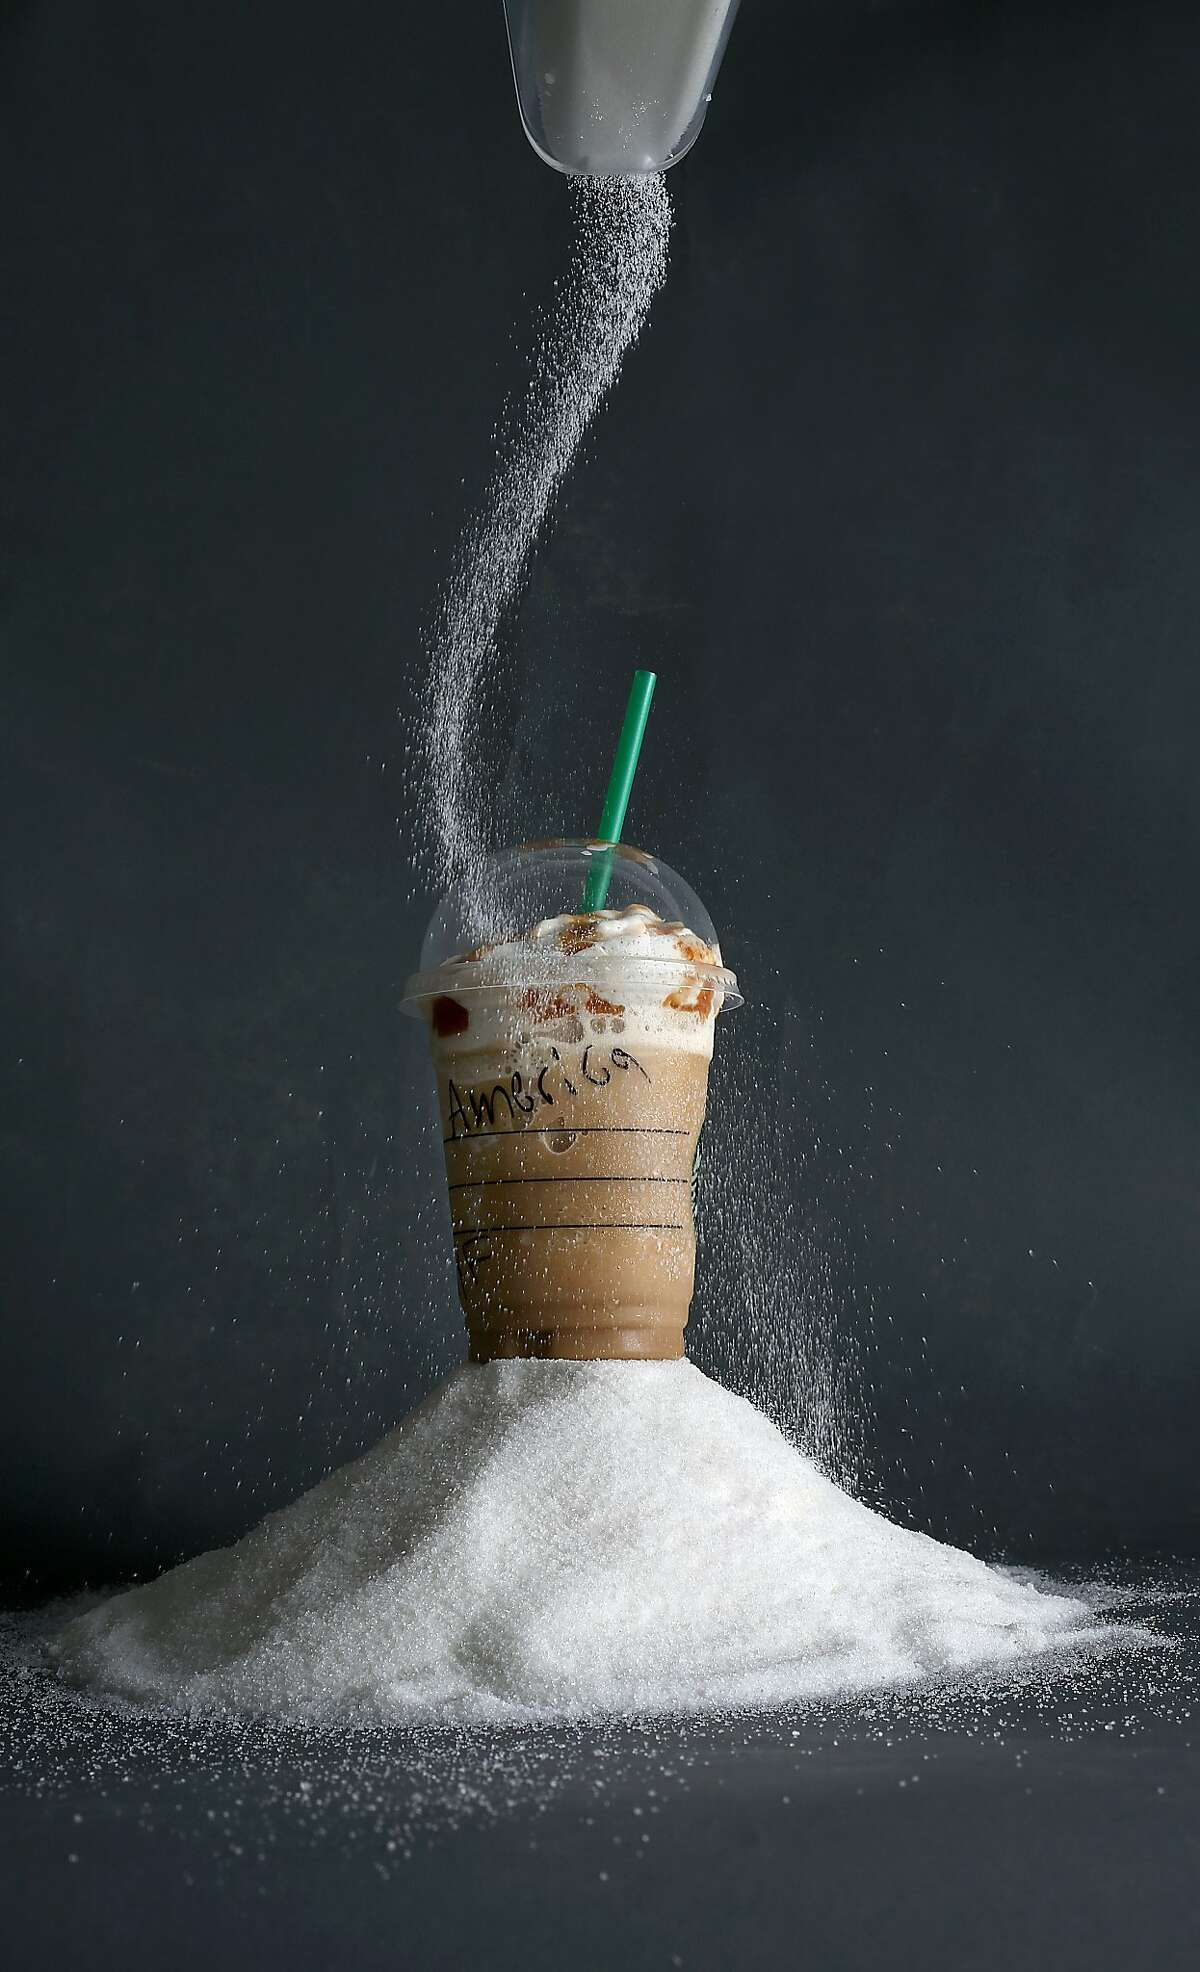 You'll consume over 8 cups of added sugar over the course of a year if you have one tall Starbucks Caramel Frappuccino every week.